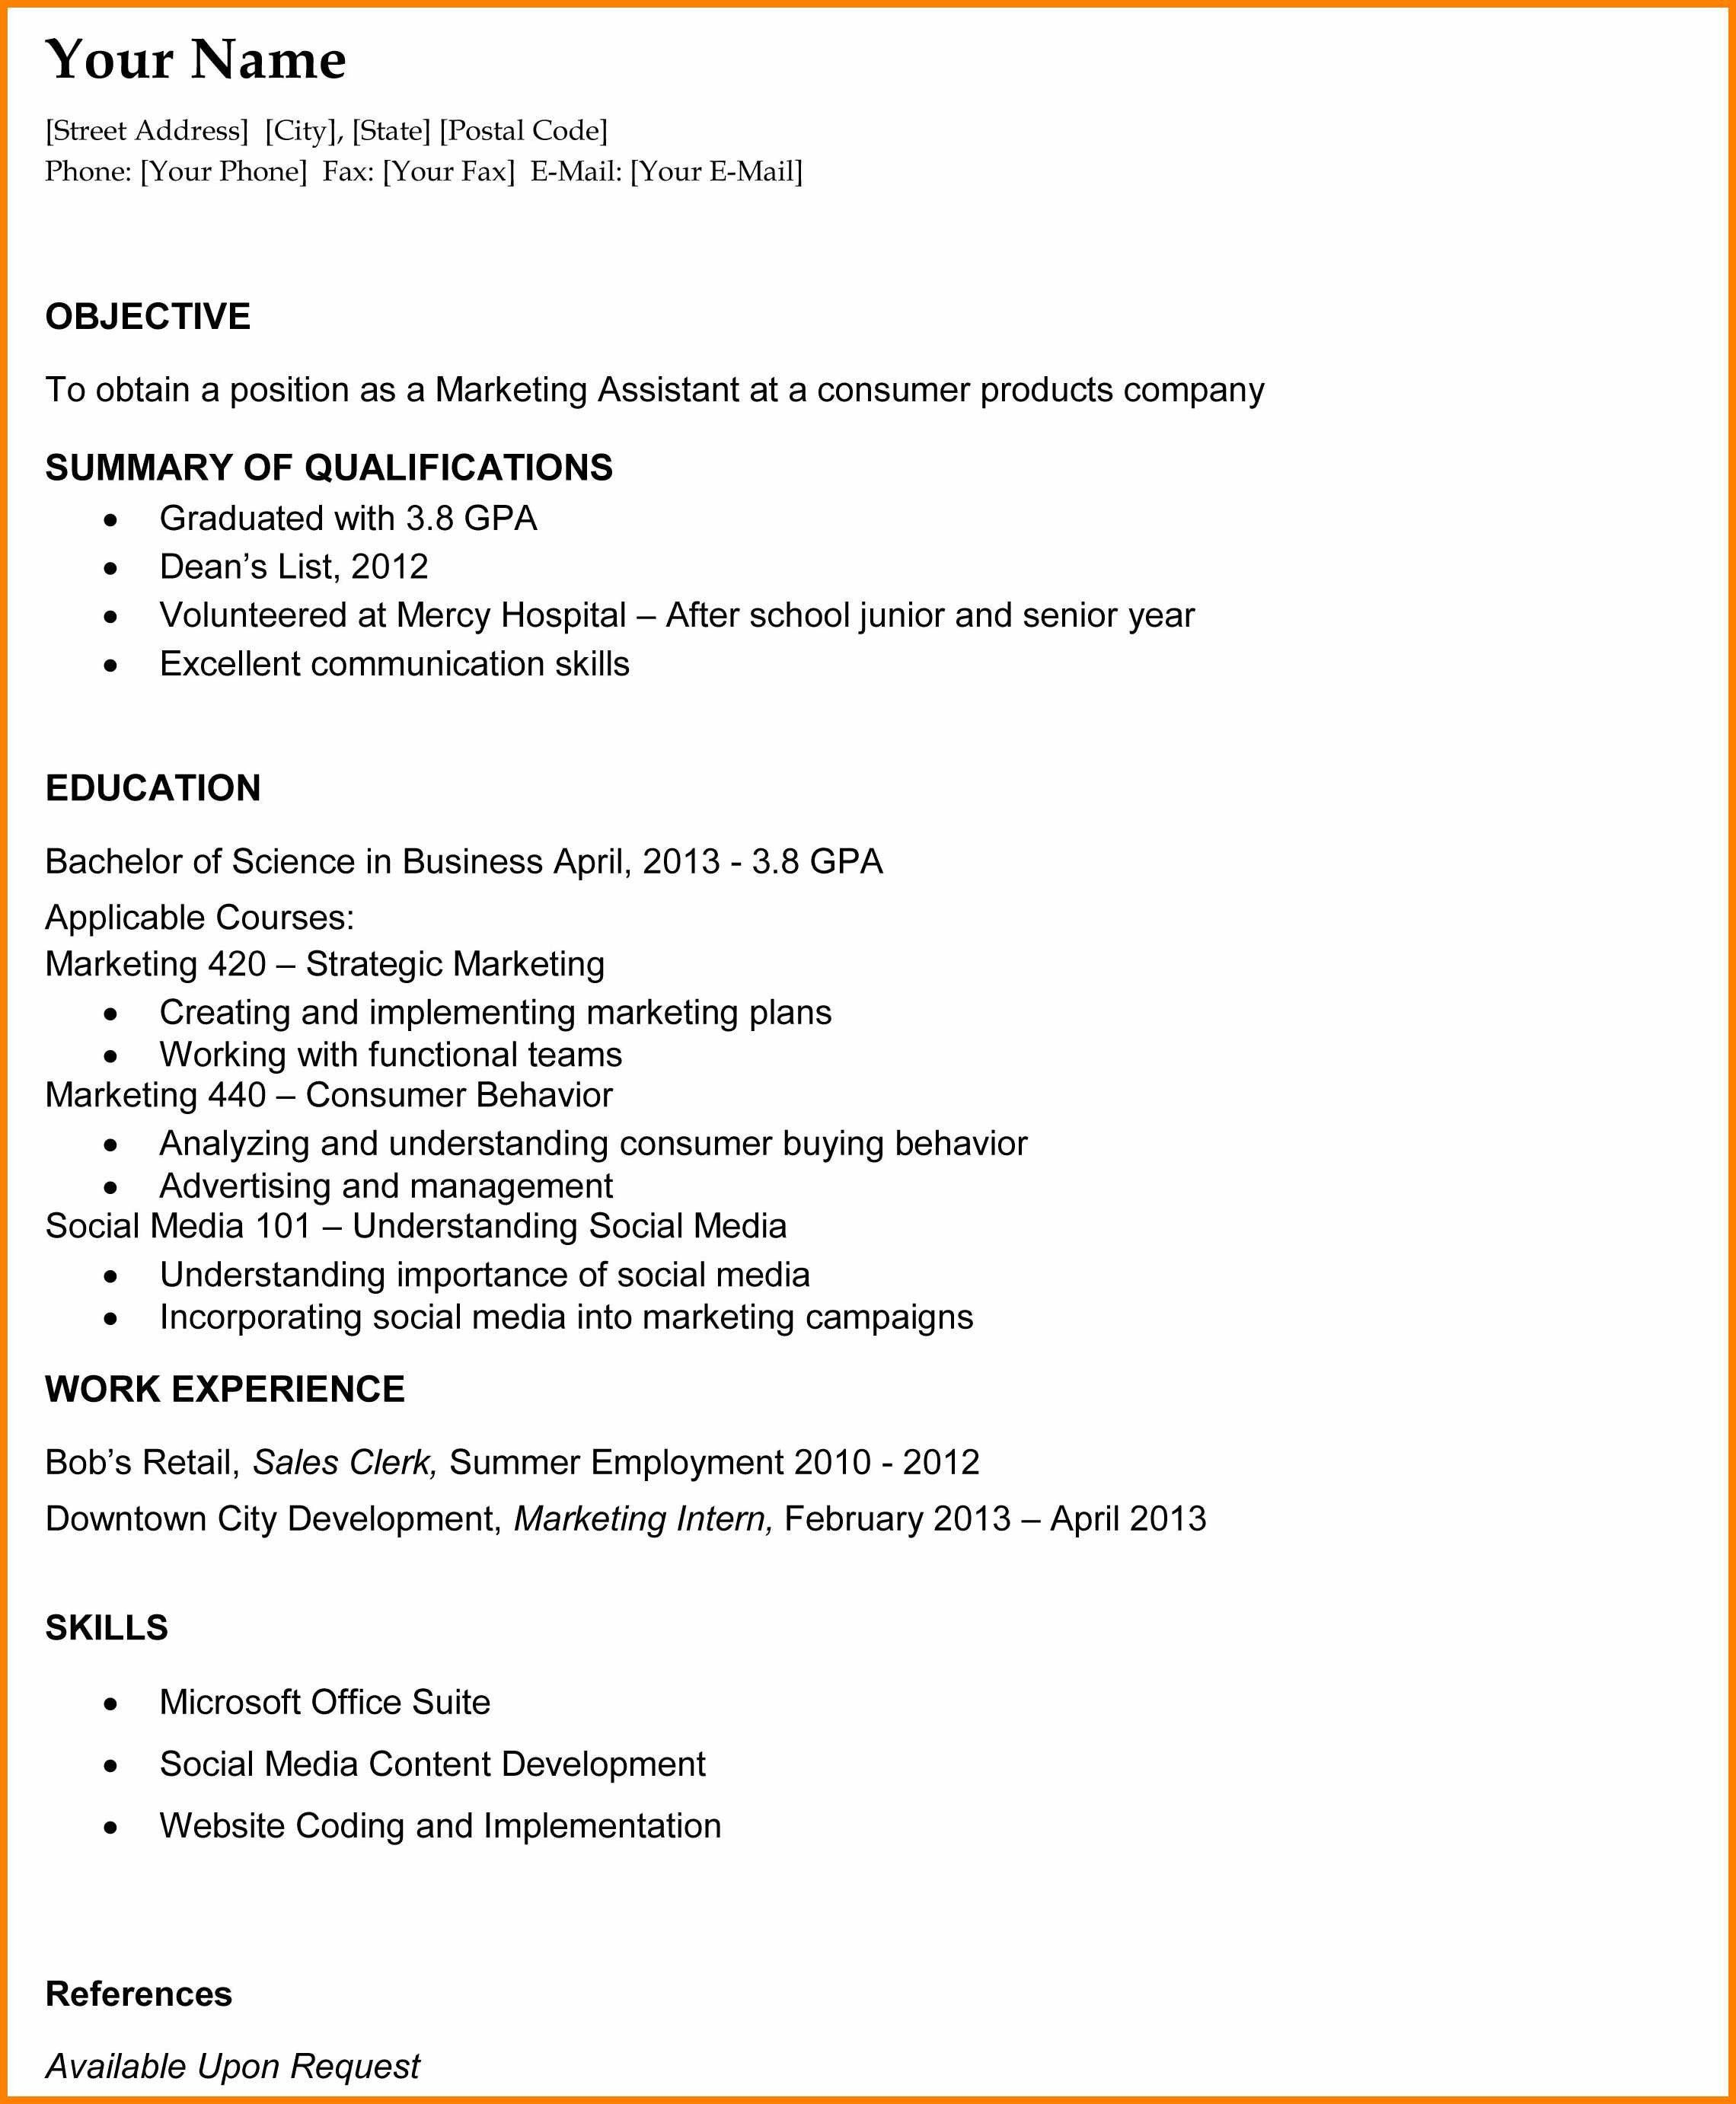 qualification summary for student resume